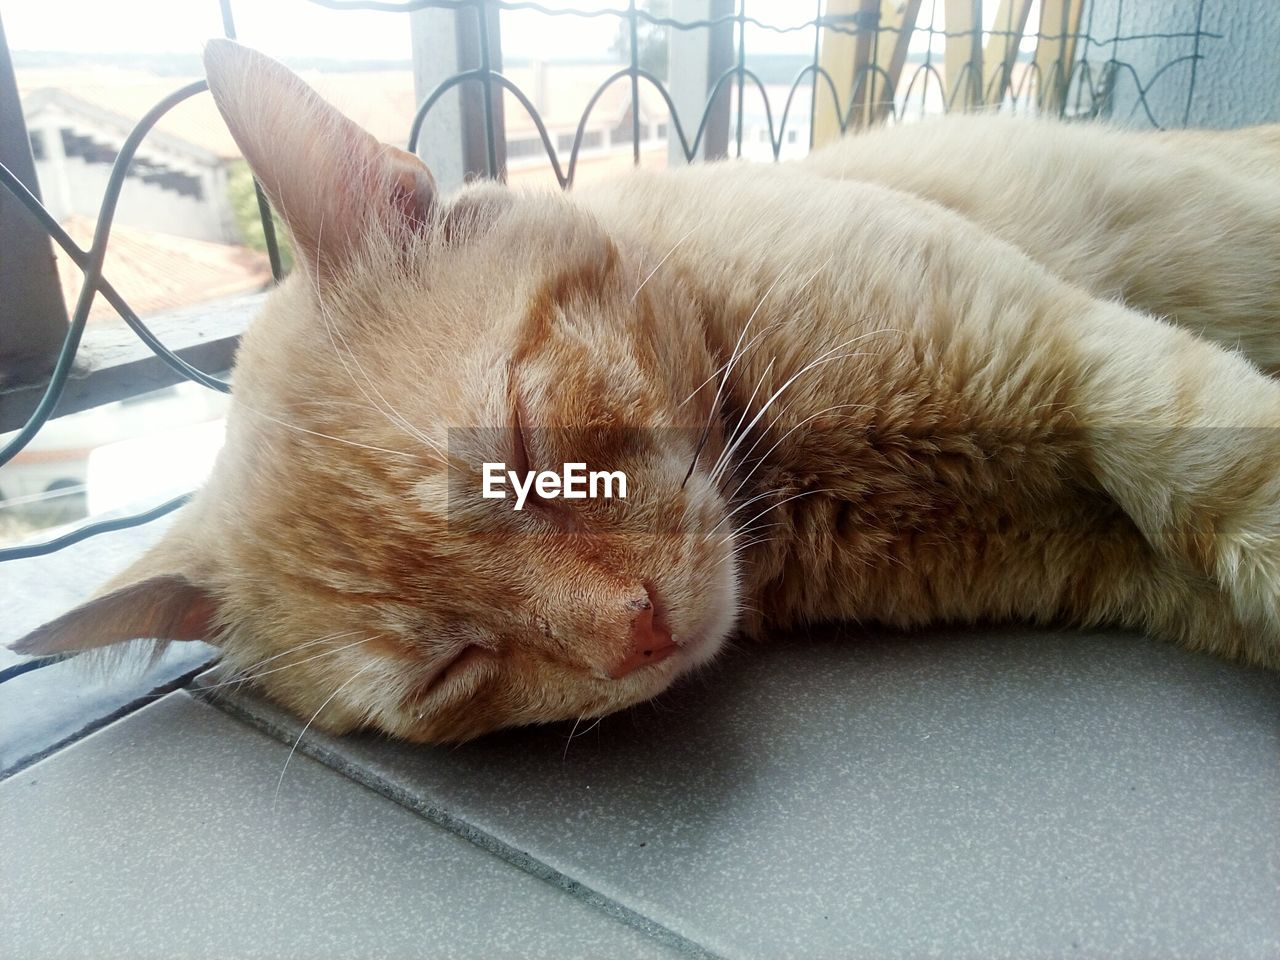 pets, one animal, domestic animals, domestic cat, mammal, animal themes, relaxation, sleeping, resting, eyes closed, feline, no people, lying down, day, close-up, indoors